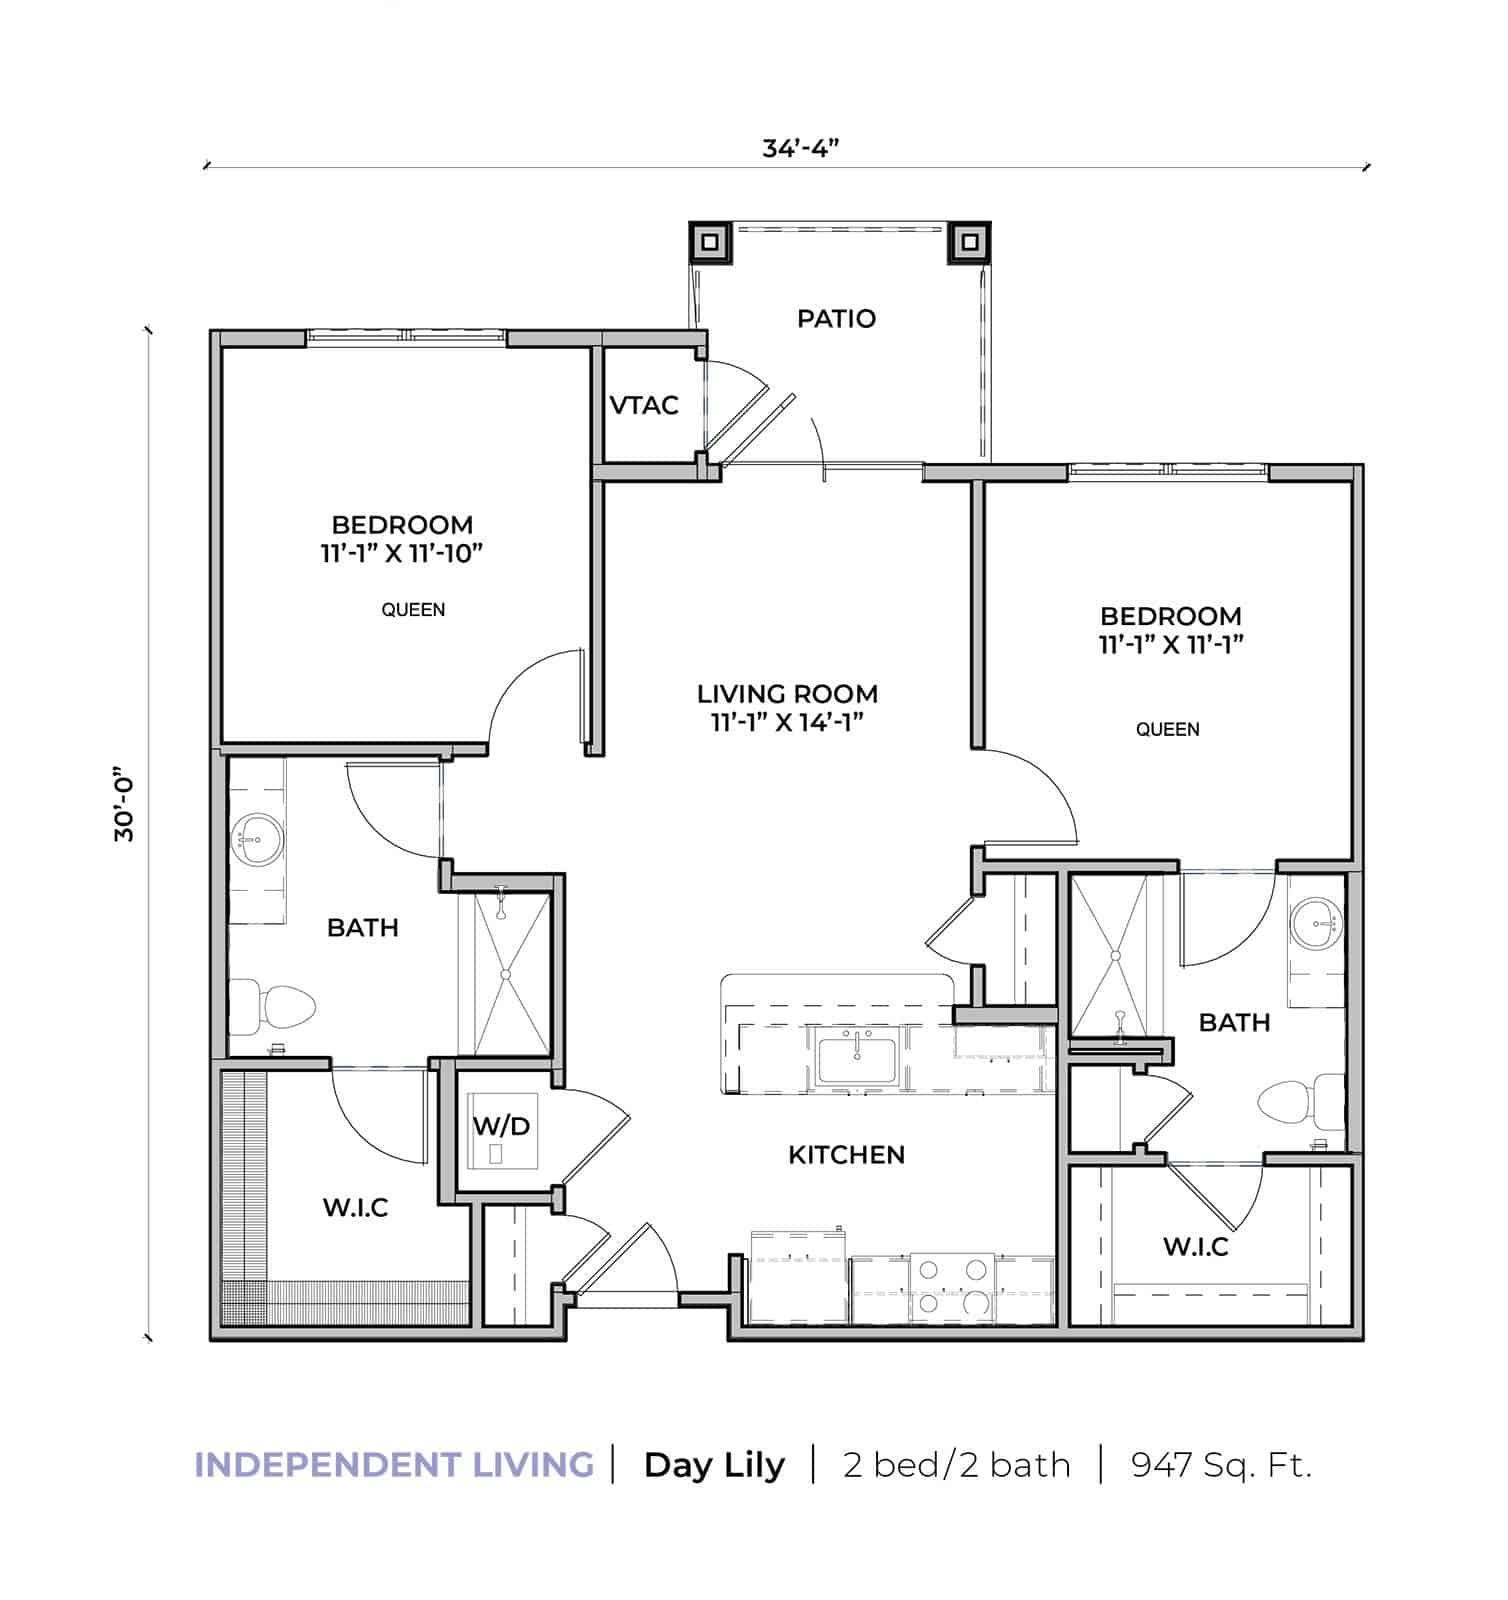 Independent living Day Lily two-bedroom two-bathroom apartment floor plan